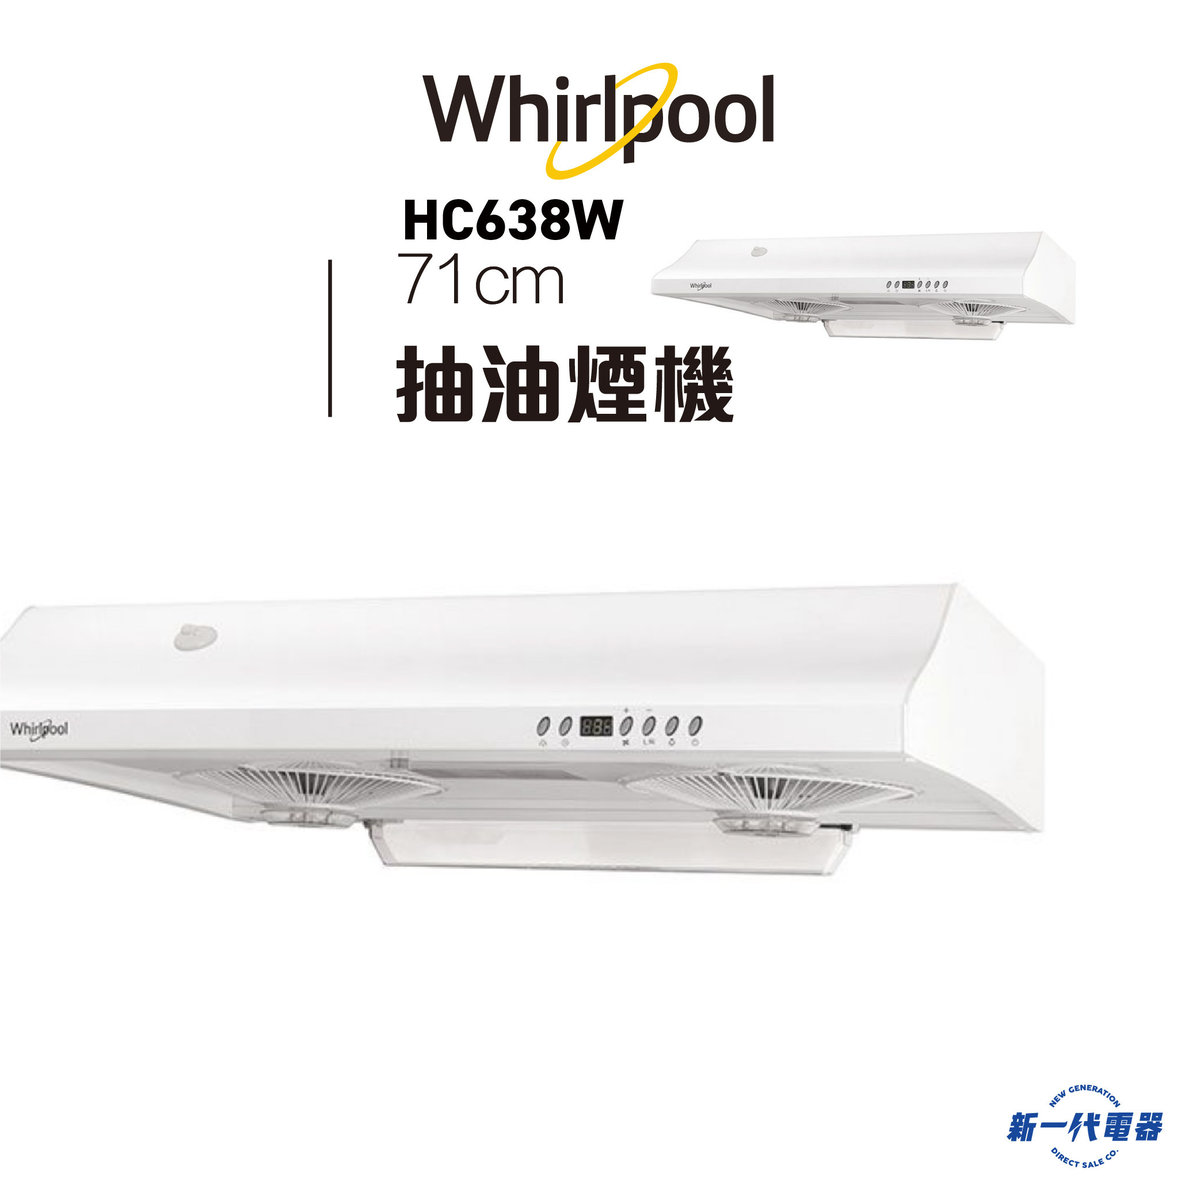 HC638W - Auto Clean and Easy Dismantle 2-in-1 Series